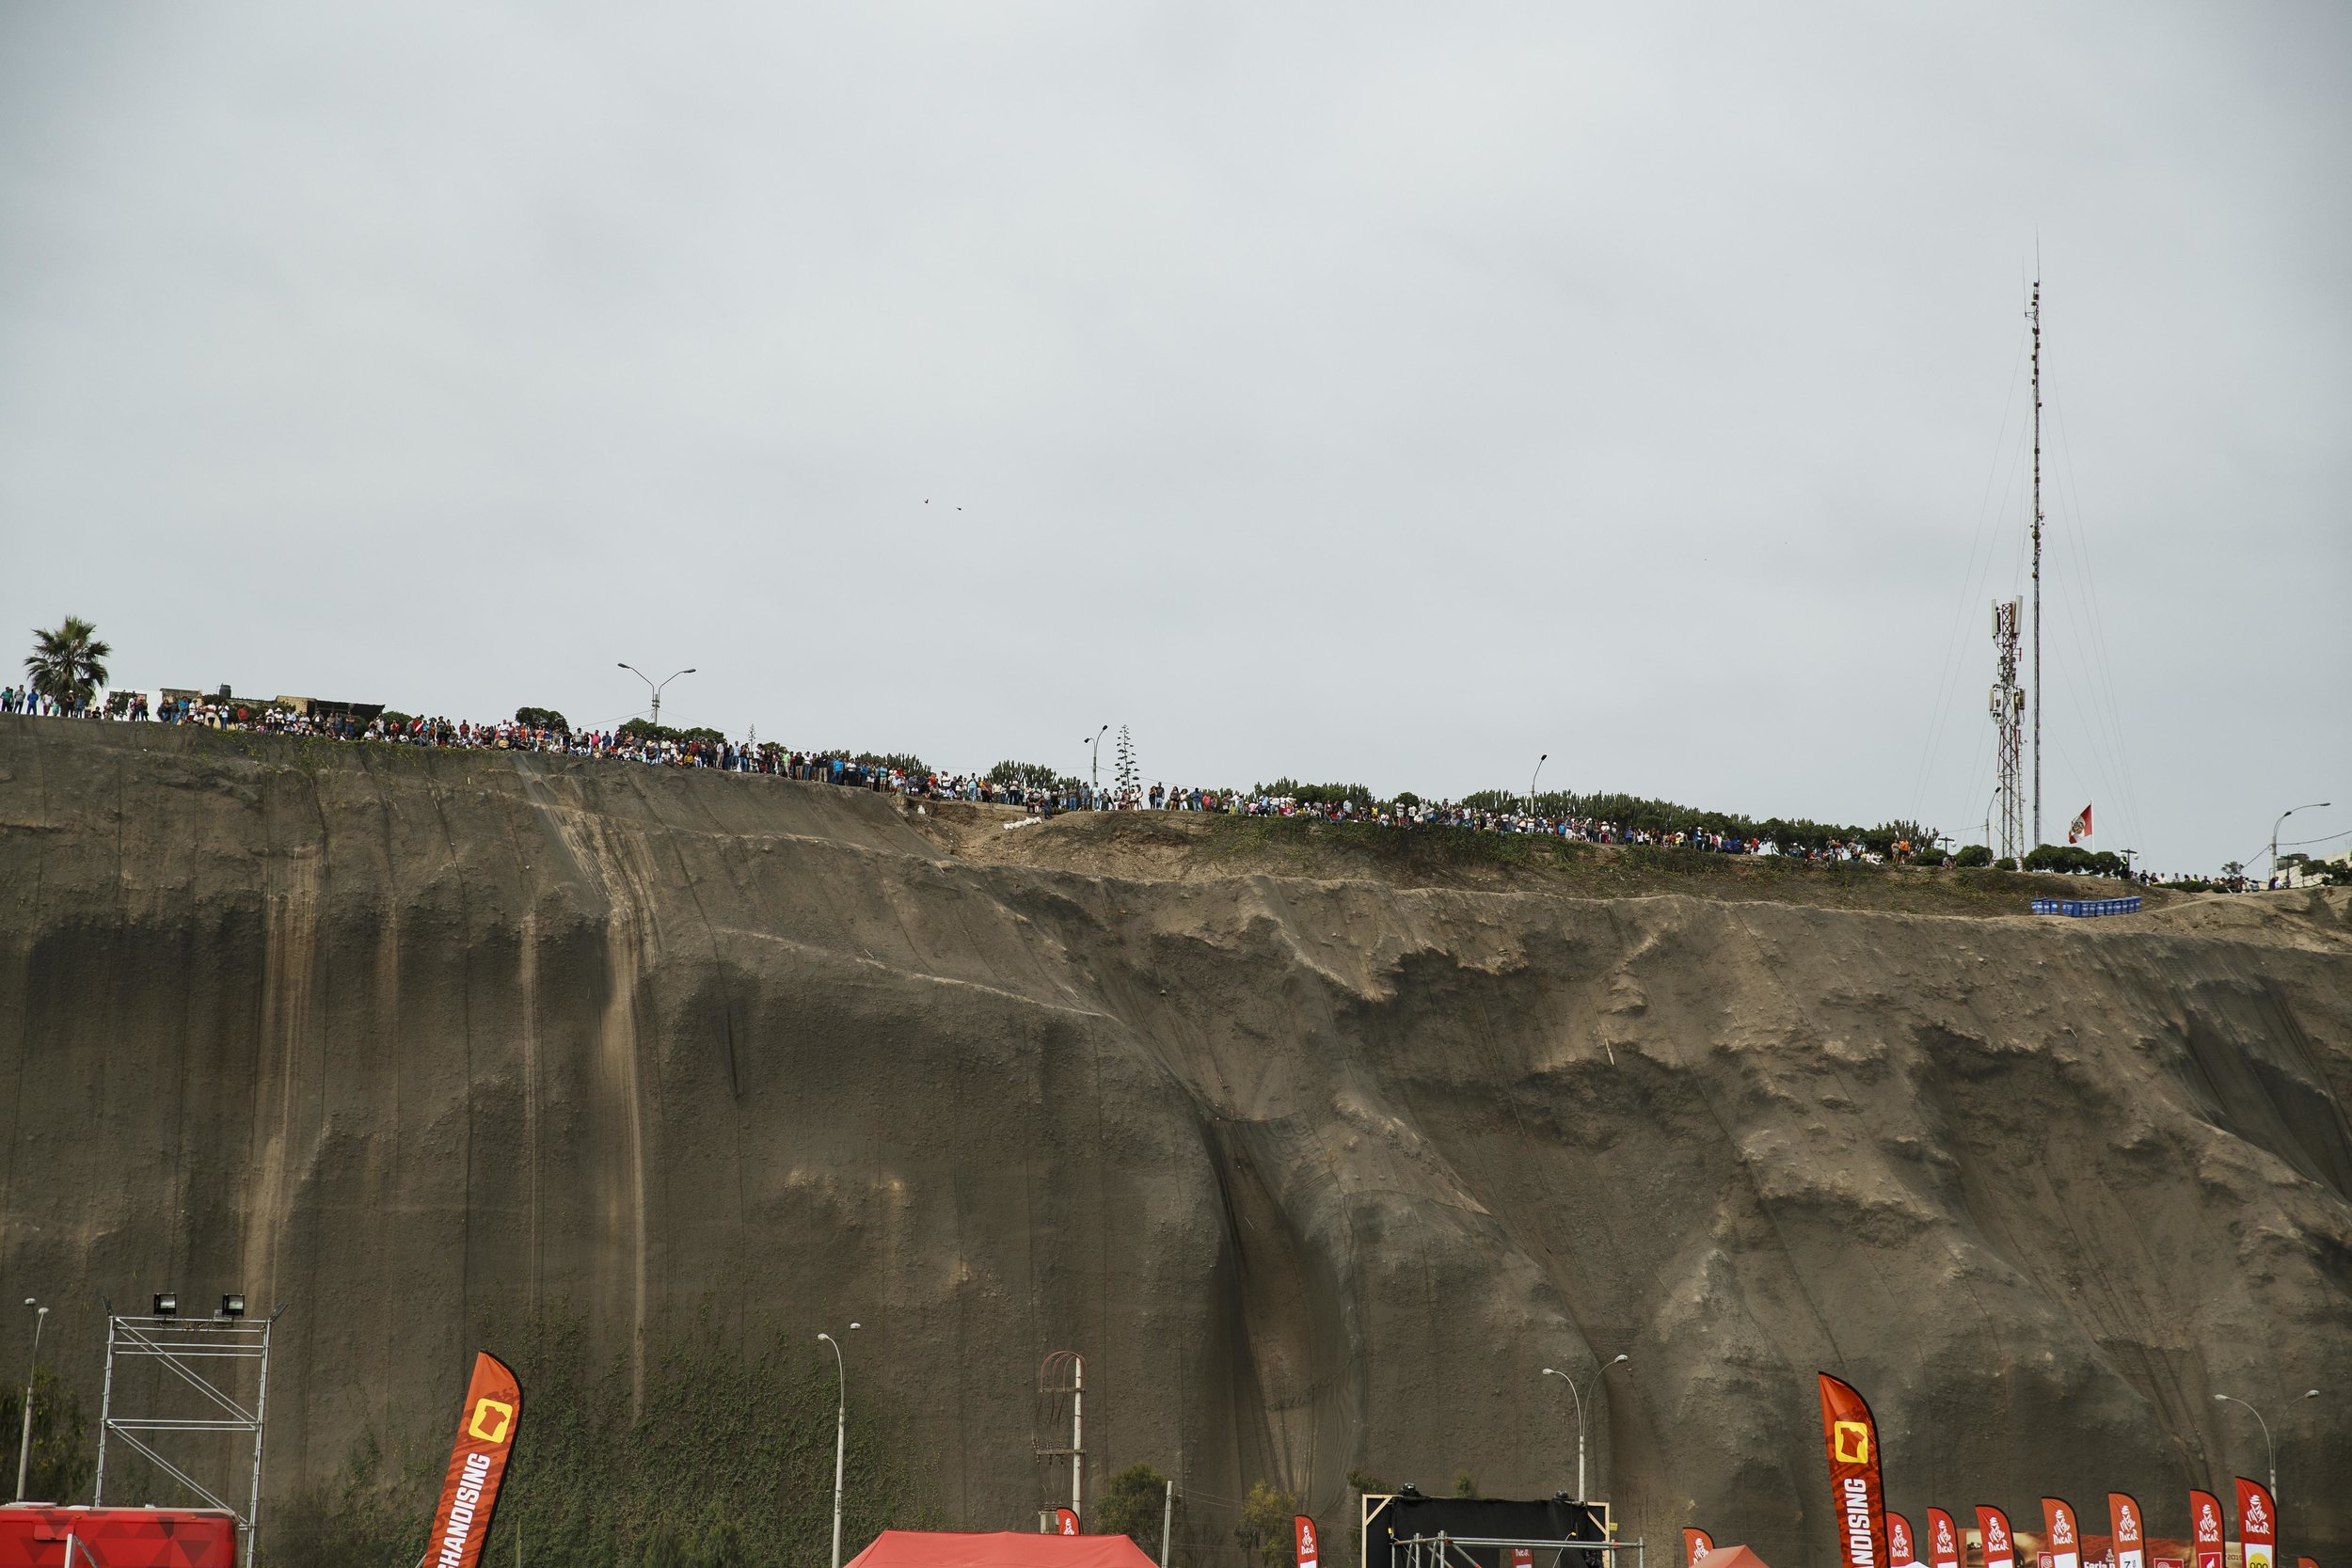 Fans line the cliffside that overlooks the beach hoping to get a view of the Podium Ceremony celebration.